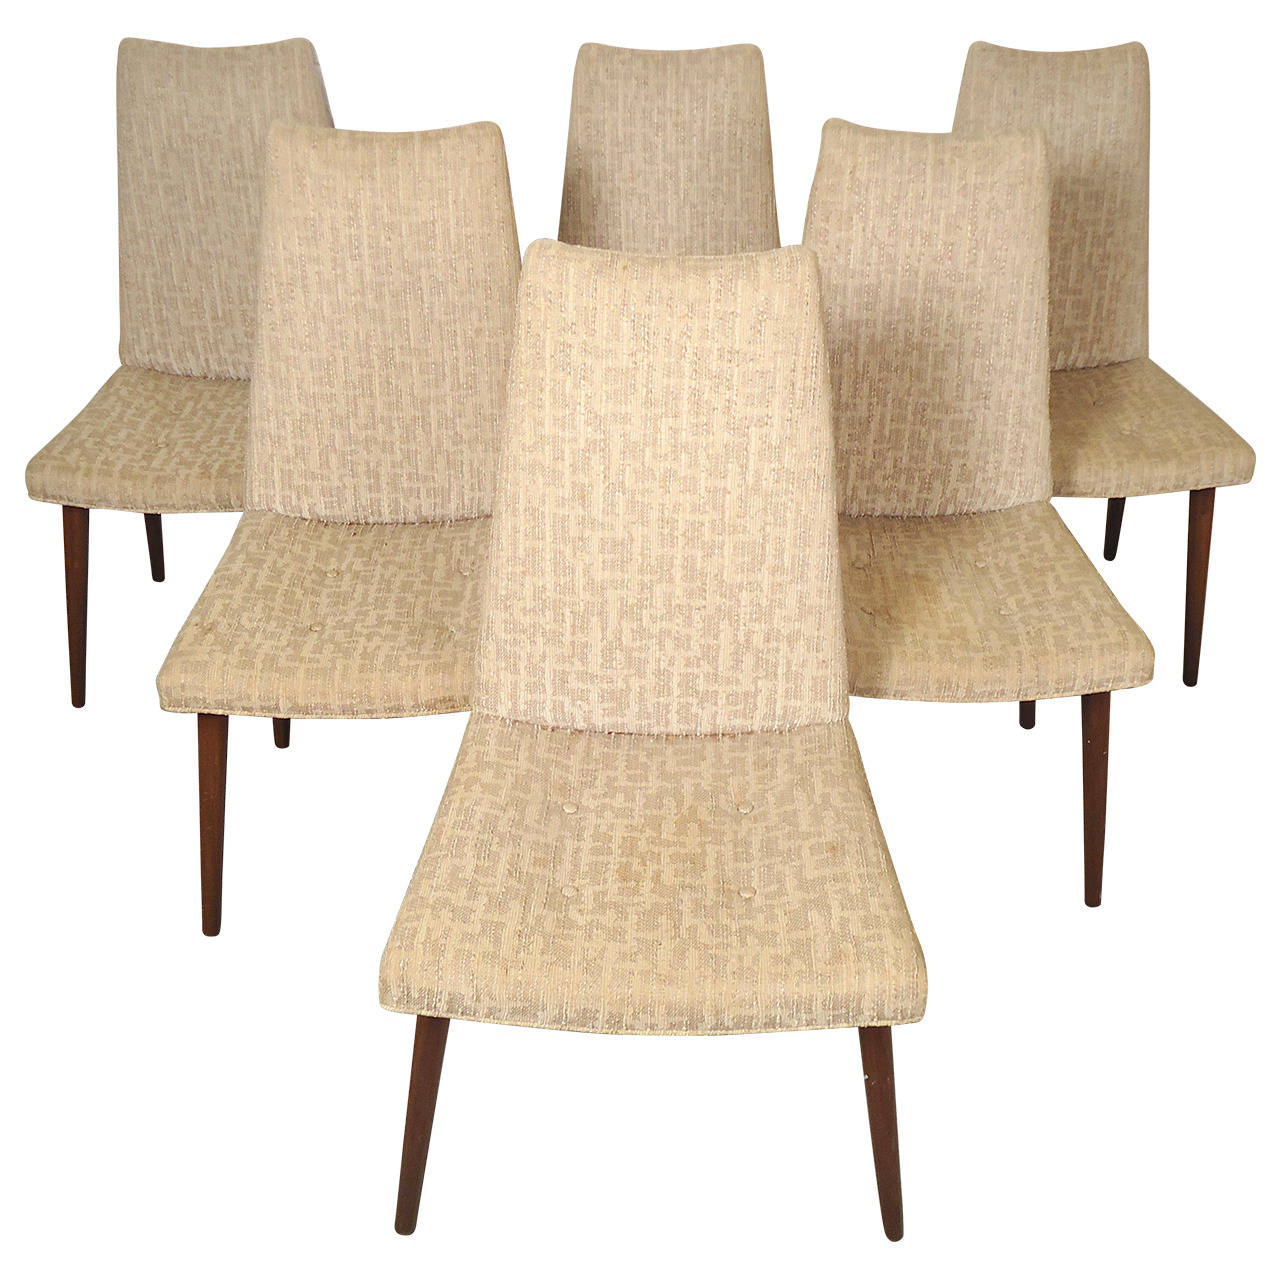 Six Mid Century Modern Chairs For Sale At 1stdibs